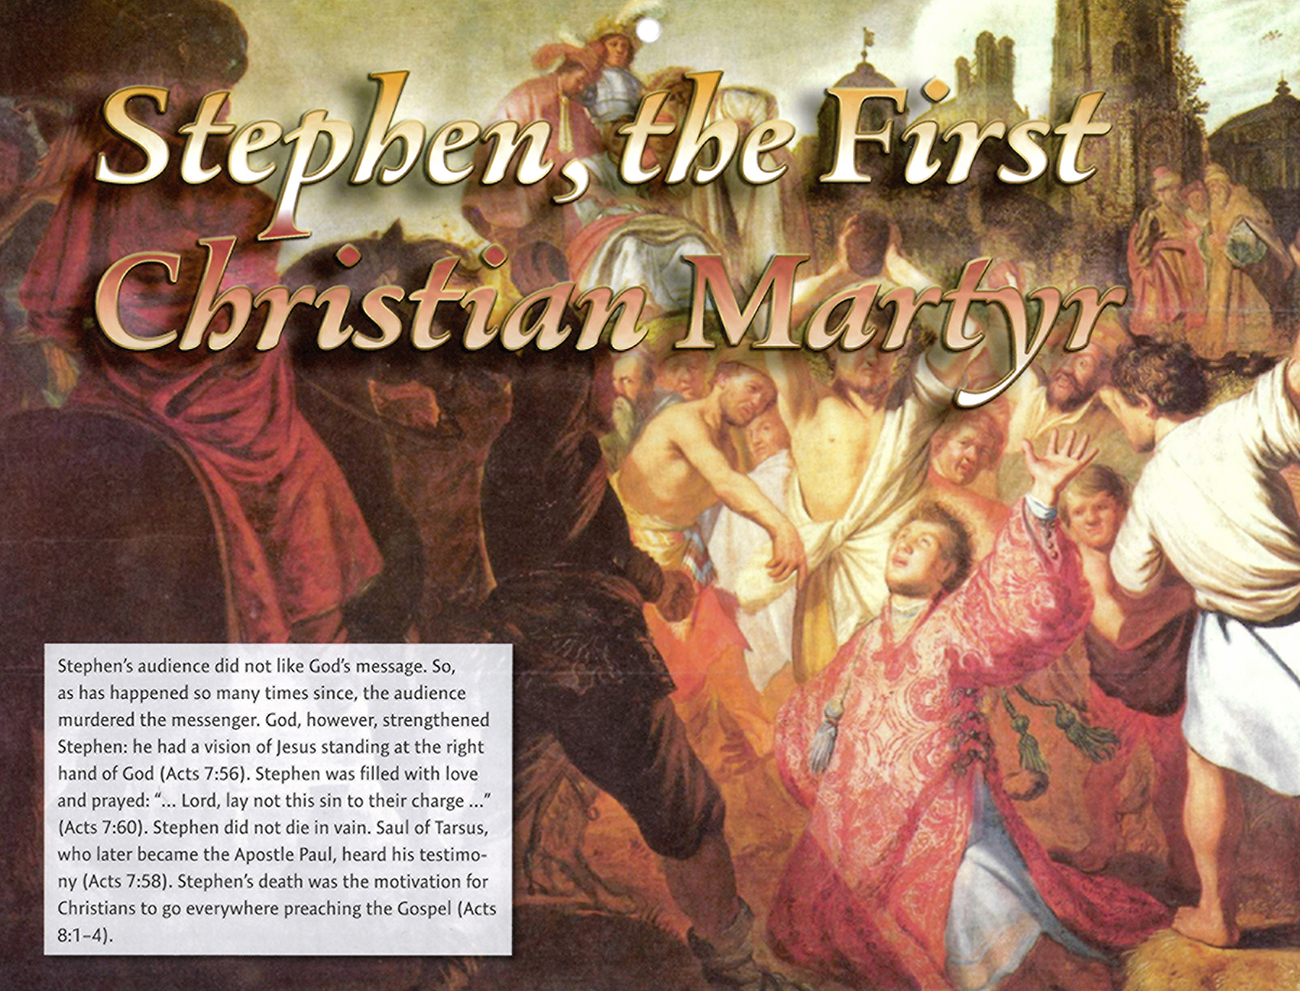 2016 Prophecy Calendar: February - Stephen, the First Christian Martyr